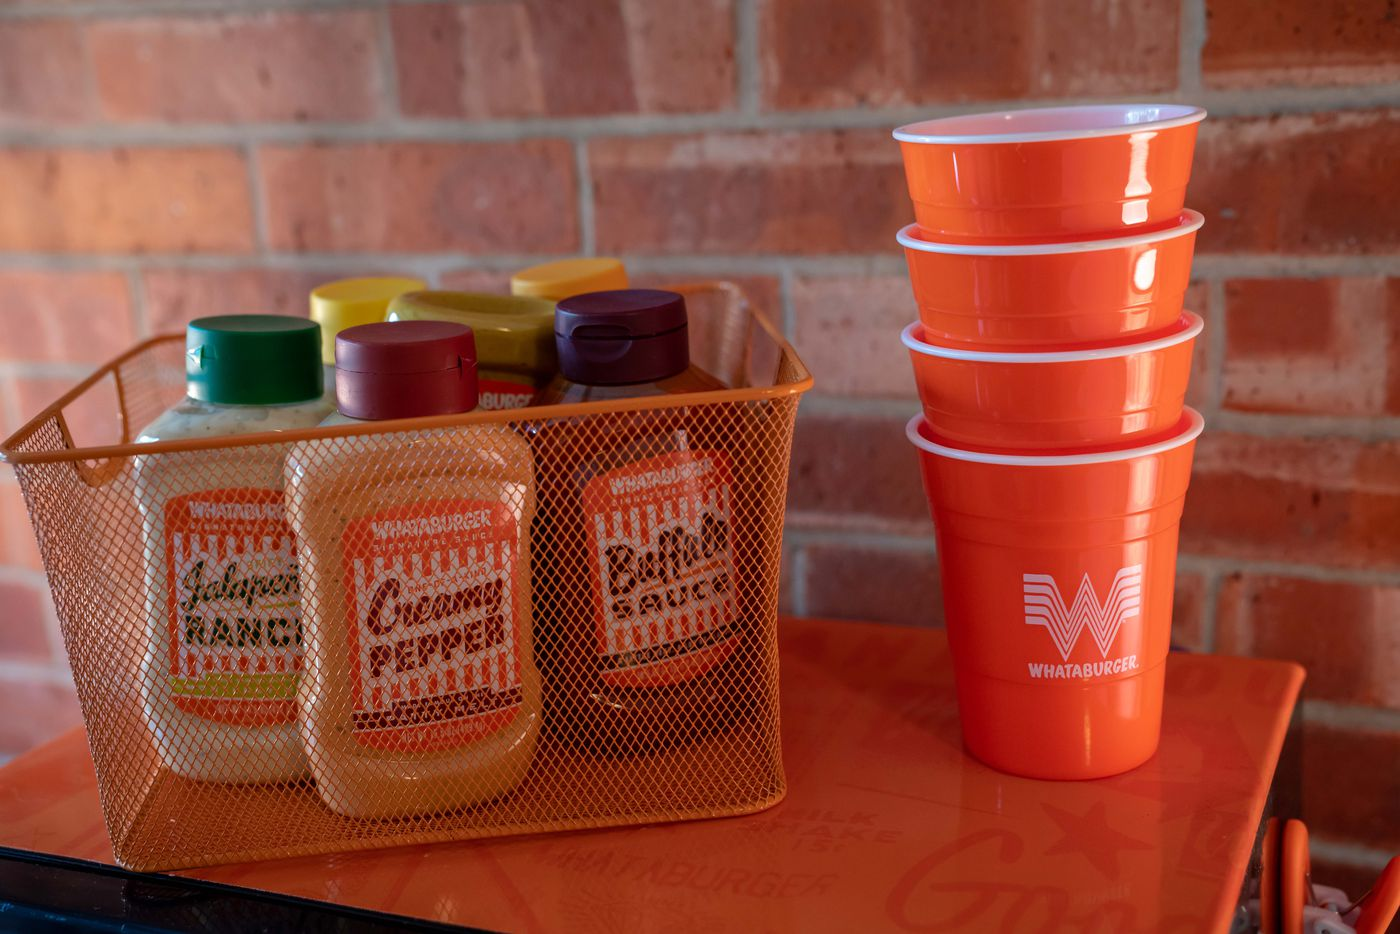 Enrique Alcoreza's Whataburger-themed dorm room -- which came free from the Texas burger brand -- includes a basket of sauces, of course.